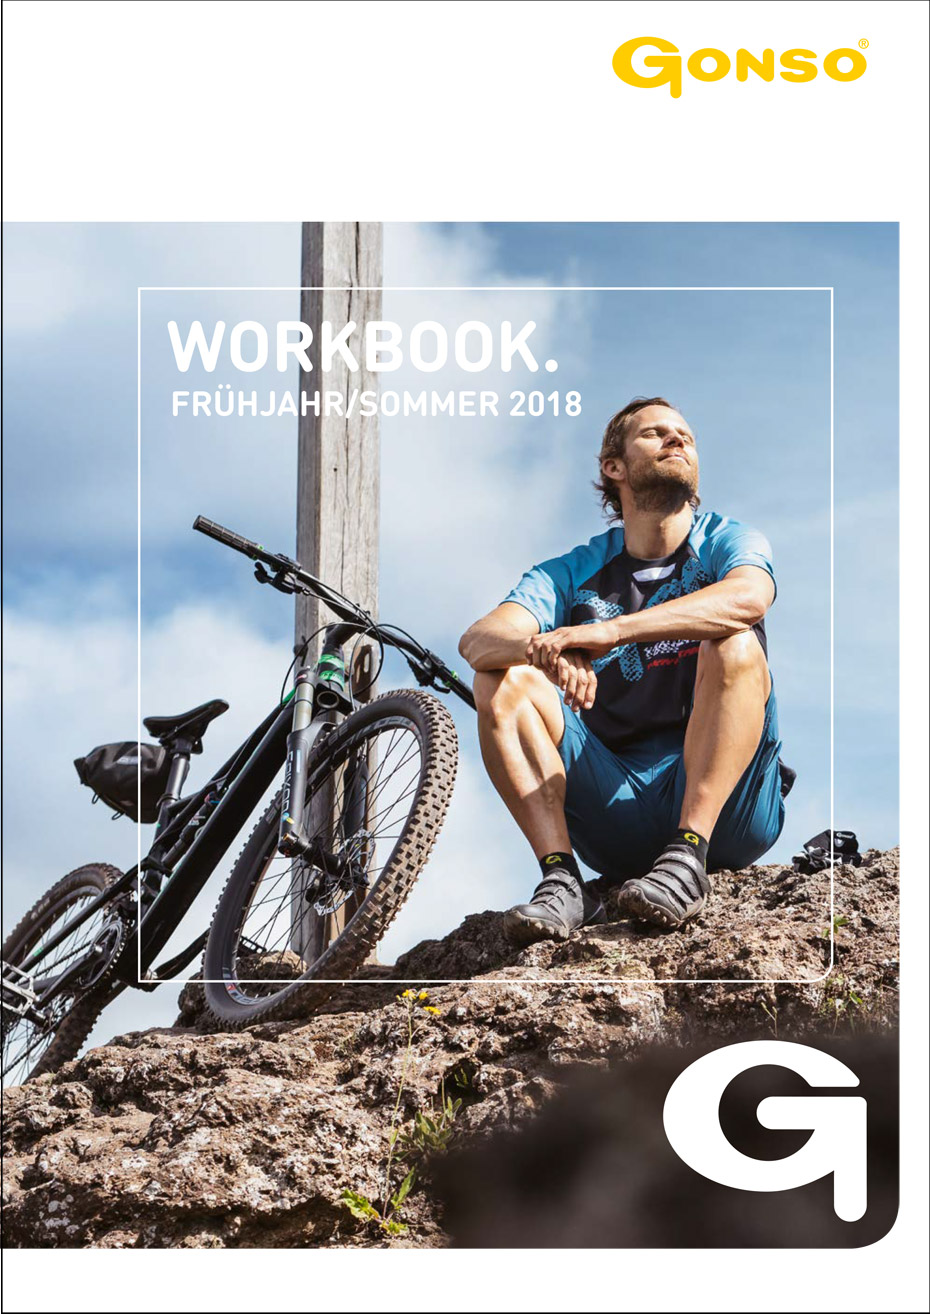 stiphout_GONSO_summer2018_Workbook-01